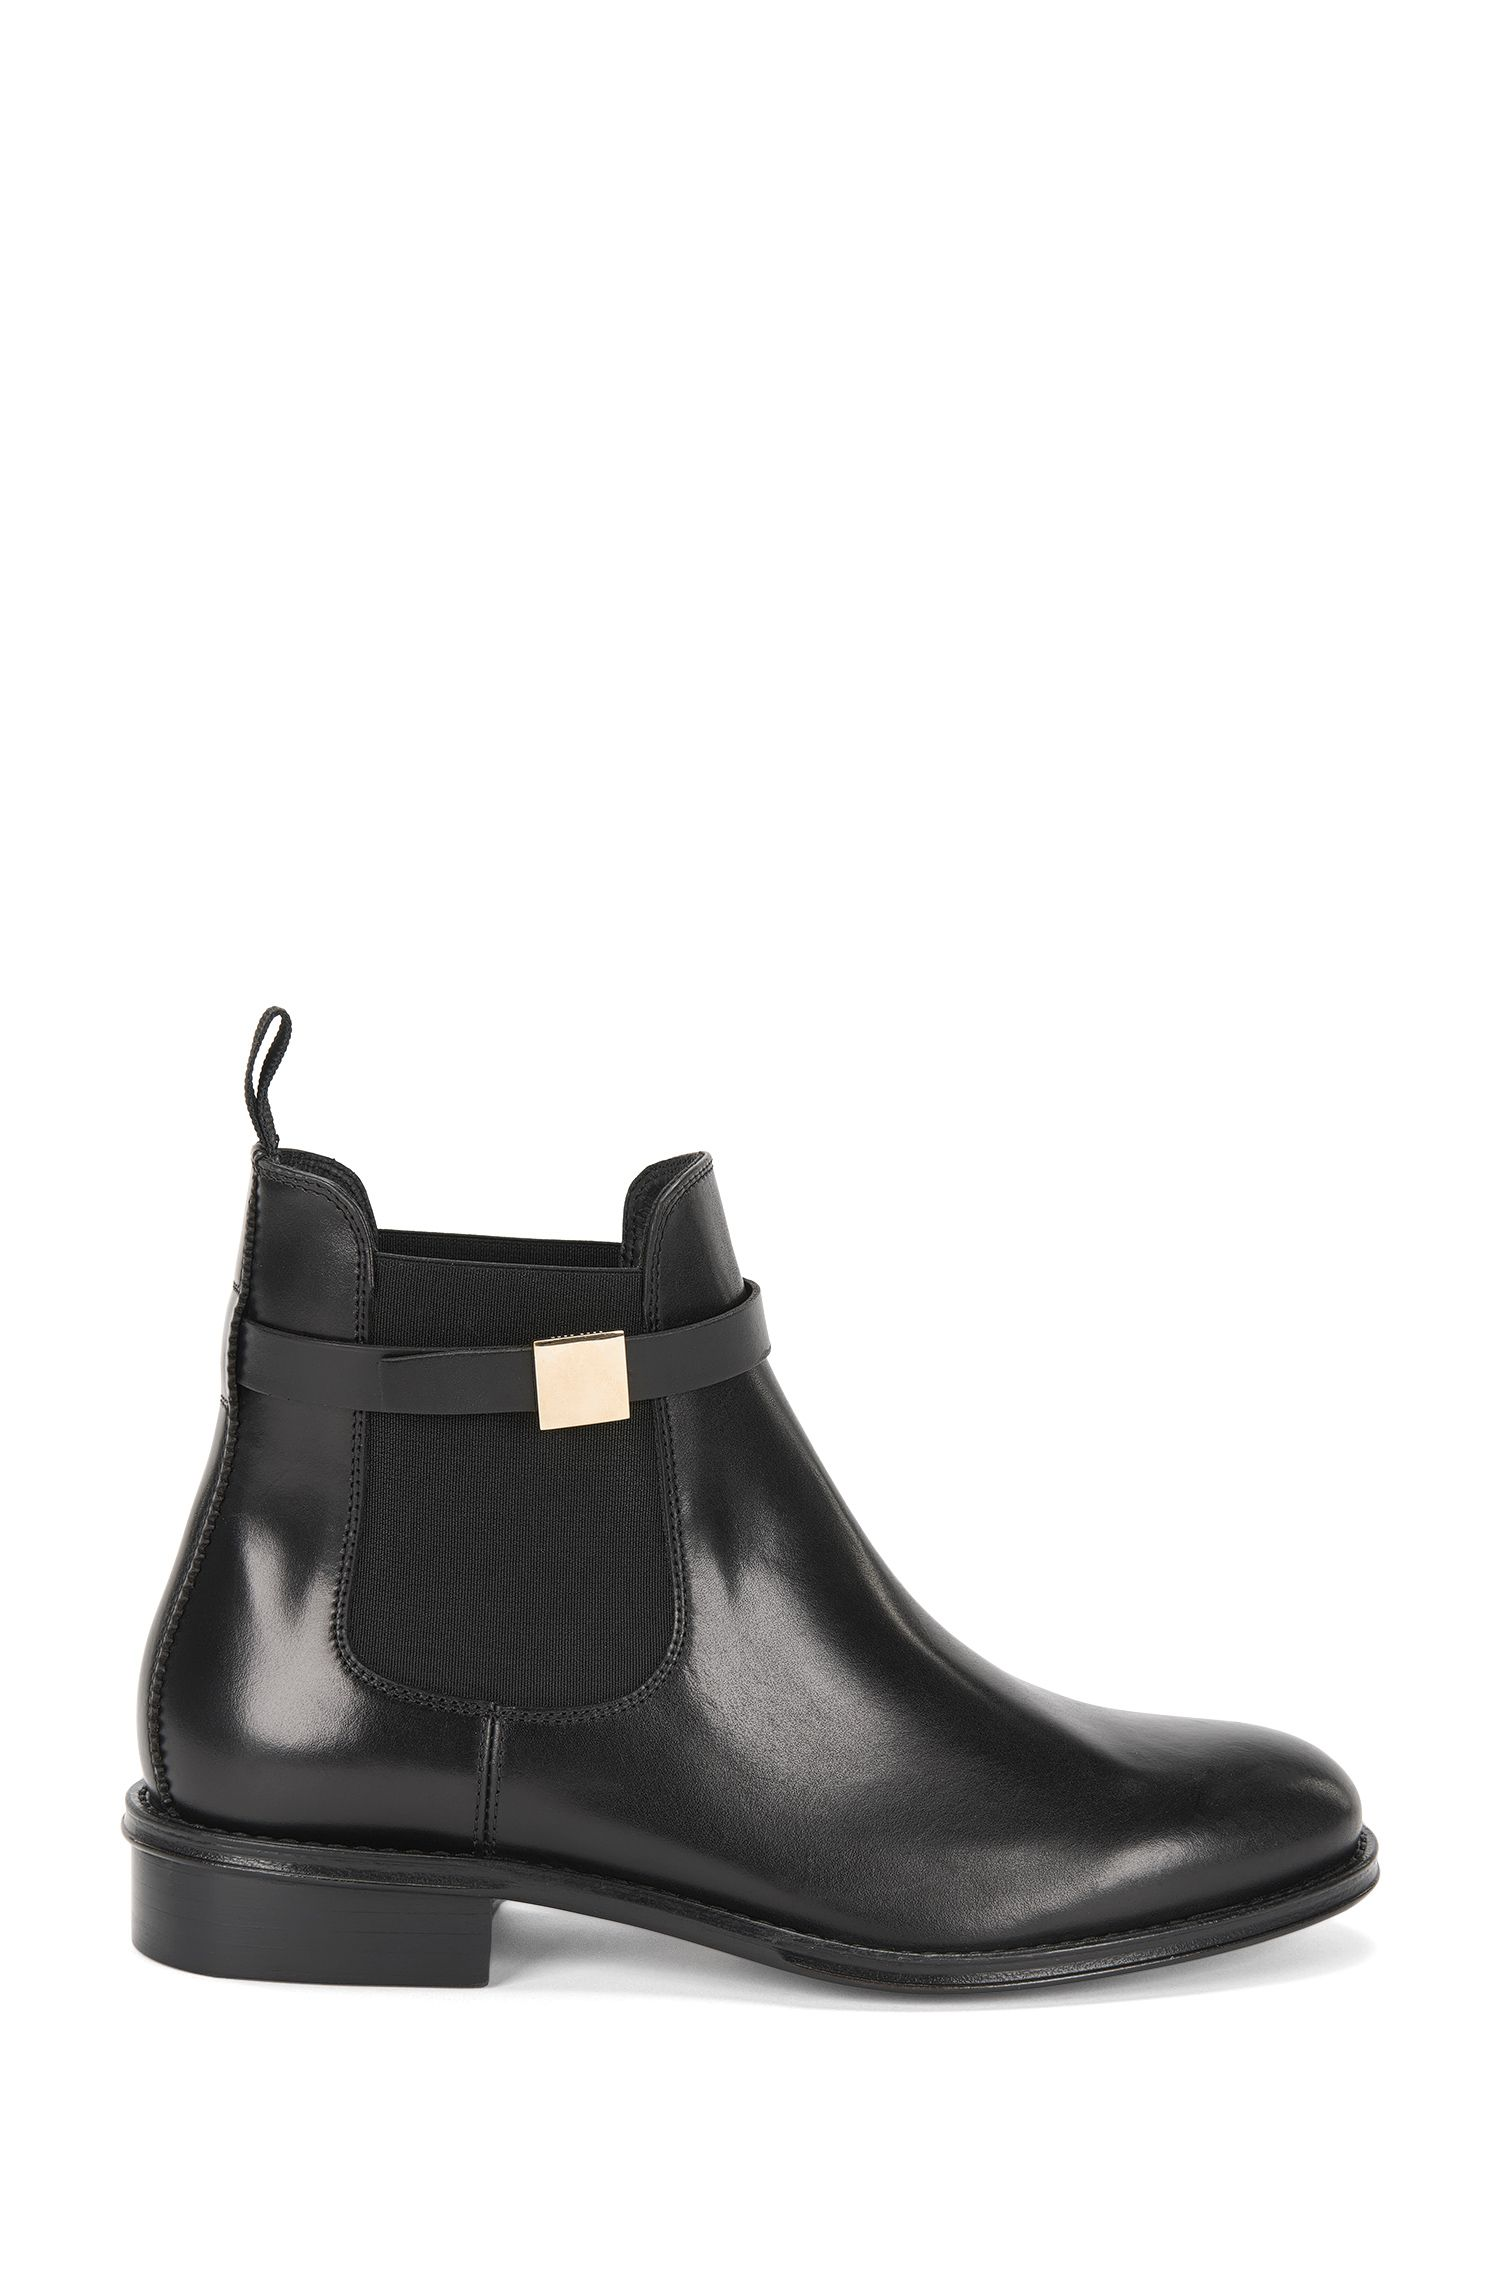 Chelsea boots in leather with decorative metal buckle: 'Chelsea-H'